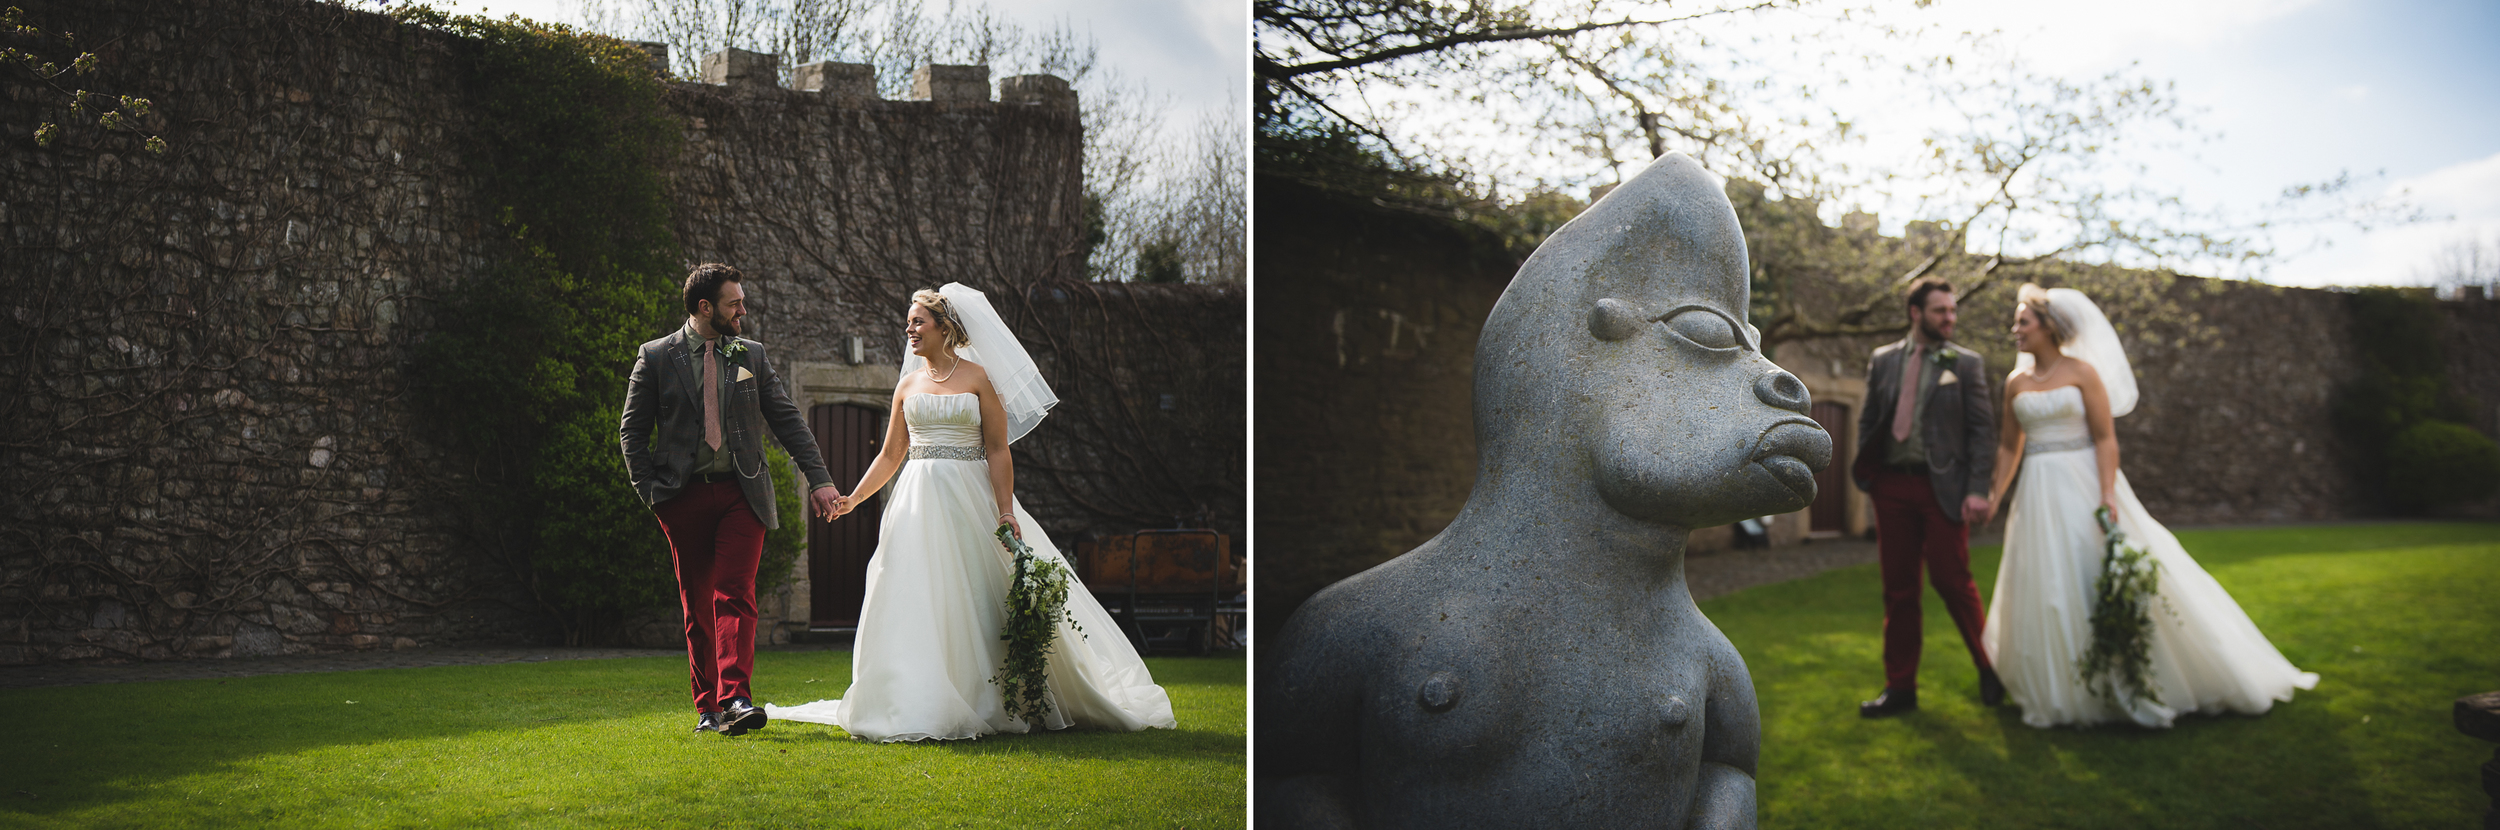 natural and funny wedding photo of couple at walton castle clevedon